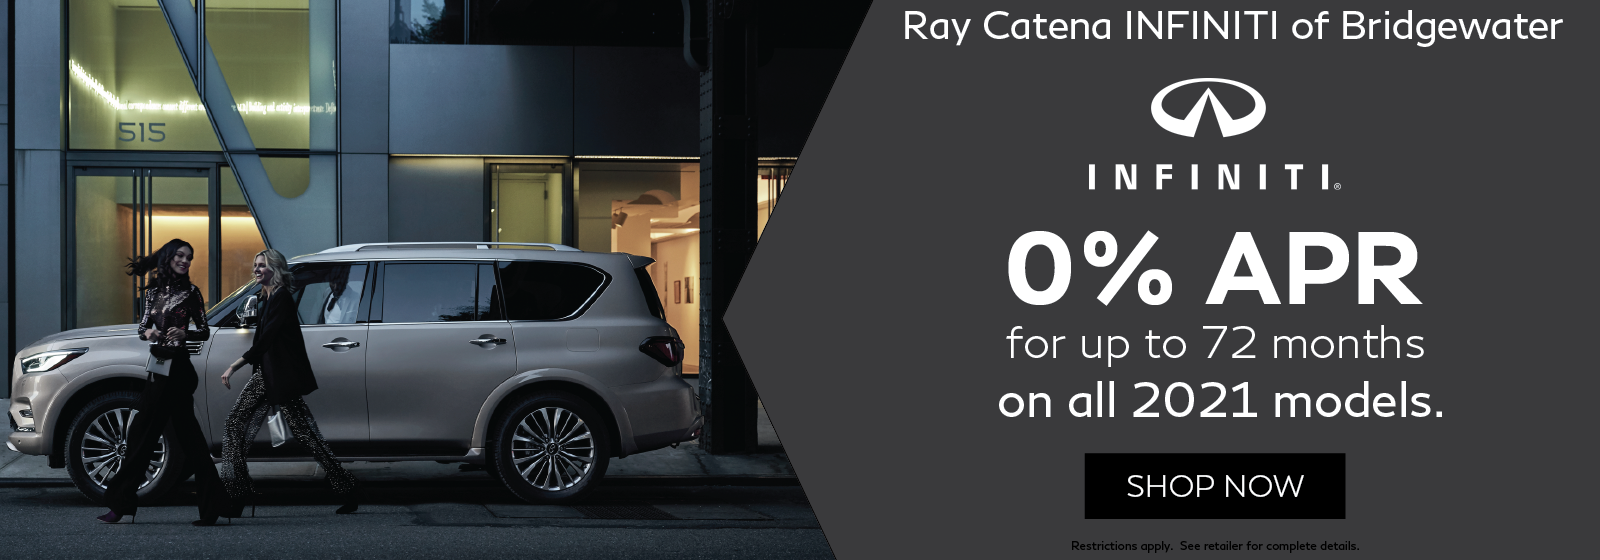 0 APR offer – Ray Catena-01